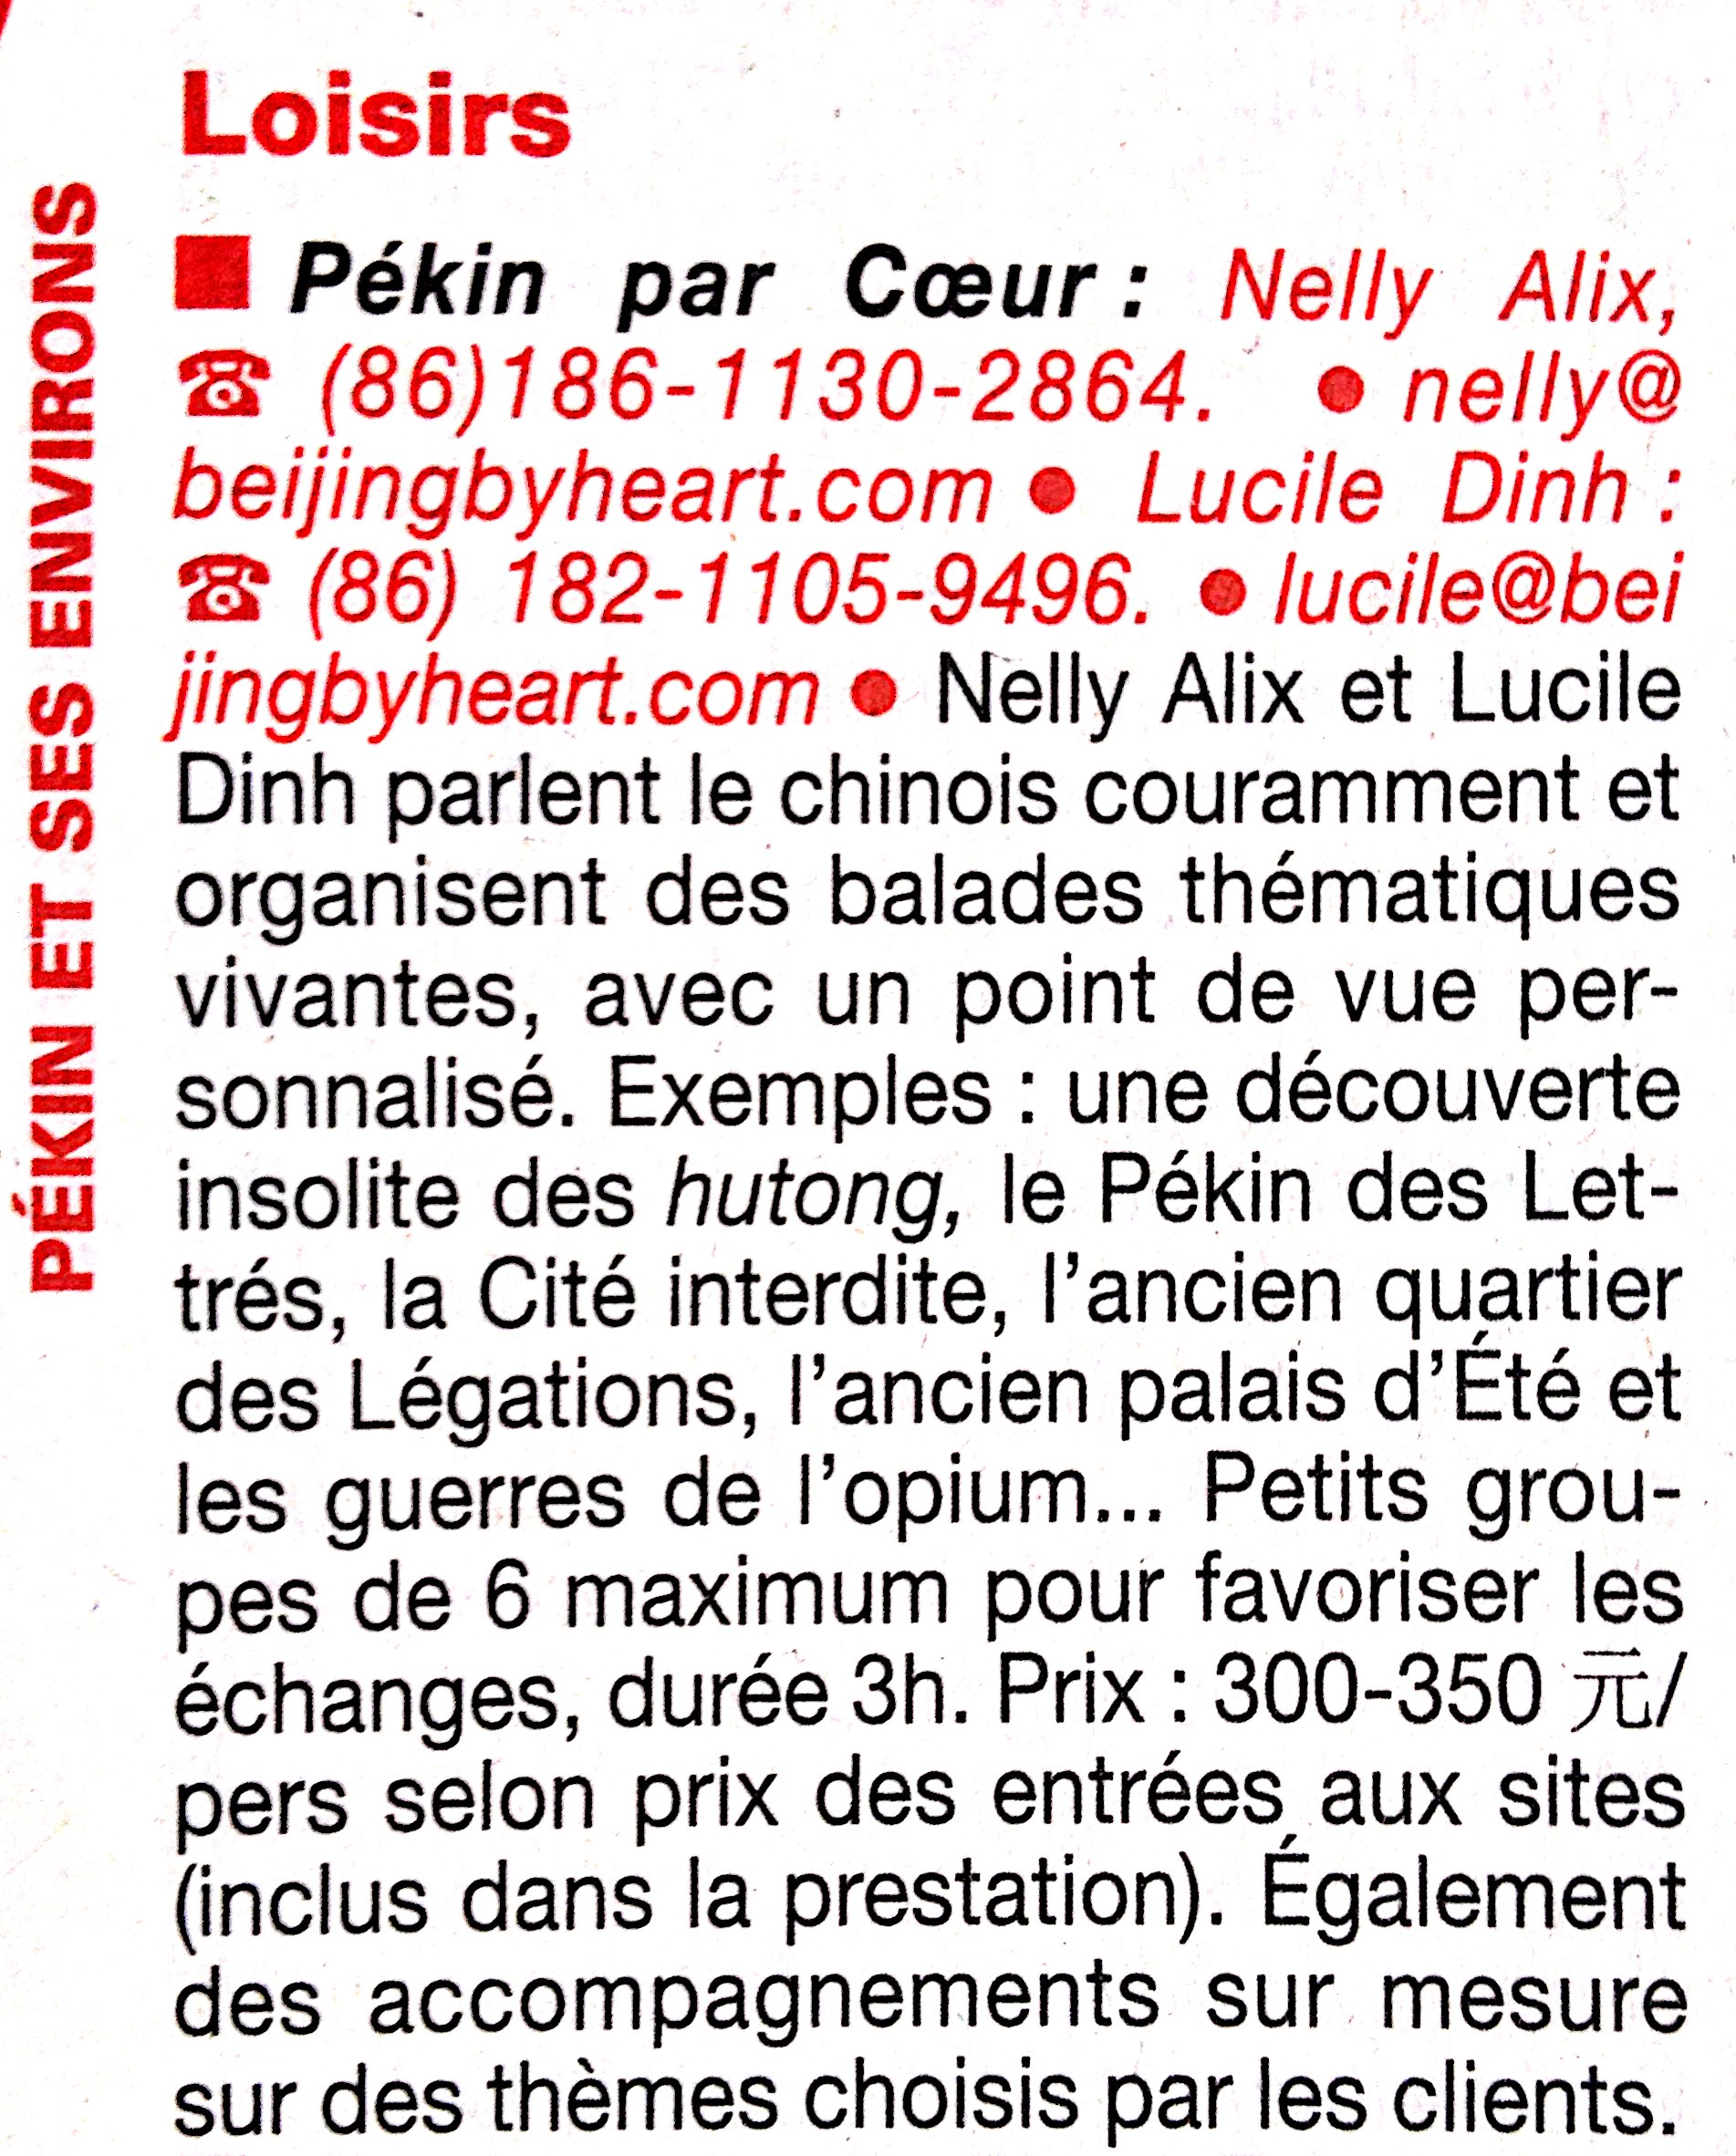 Beijing by Heart in Le Guide du Routard